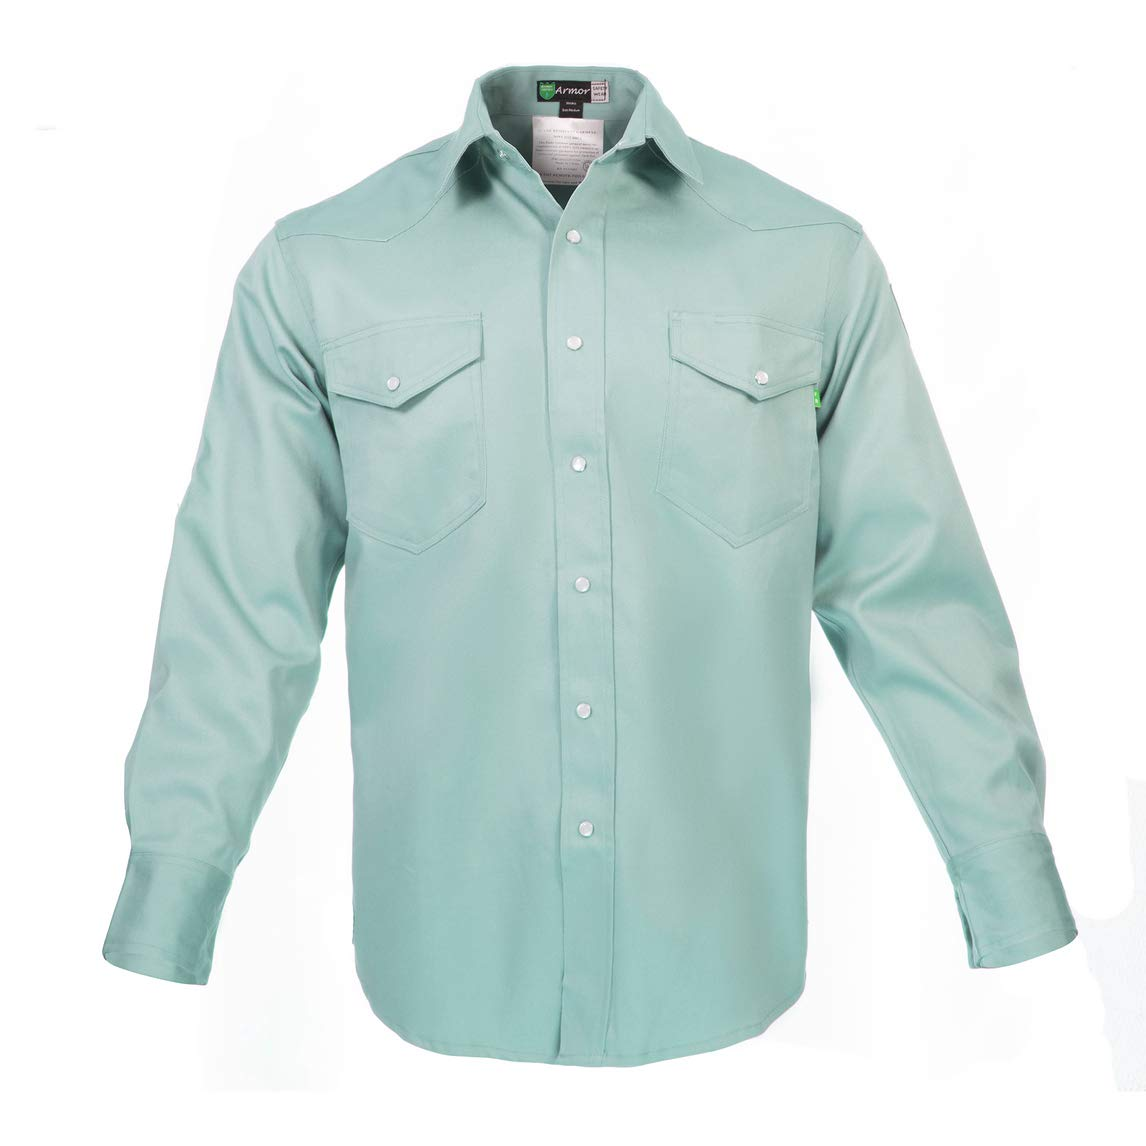 Flame Resistant FR Shirt - Heavy Weight - 100% C - 9 oz (Large, Welders Green)